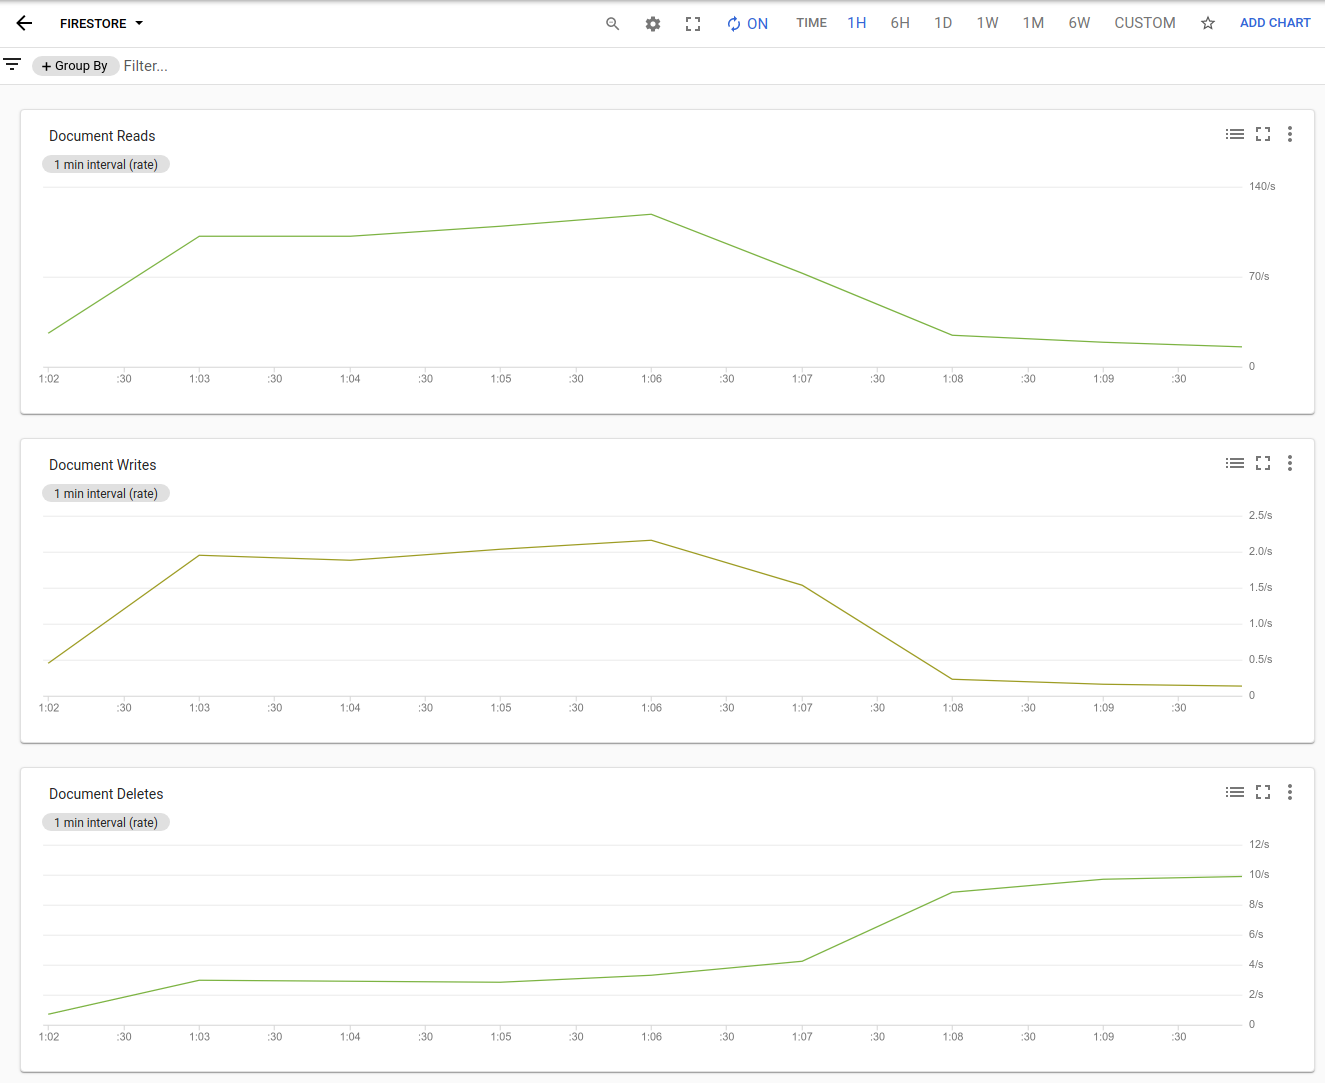 Firestore usage in a Cloud Monitoring dashboard.